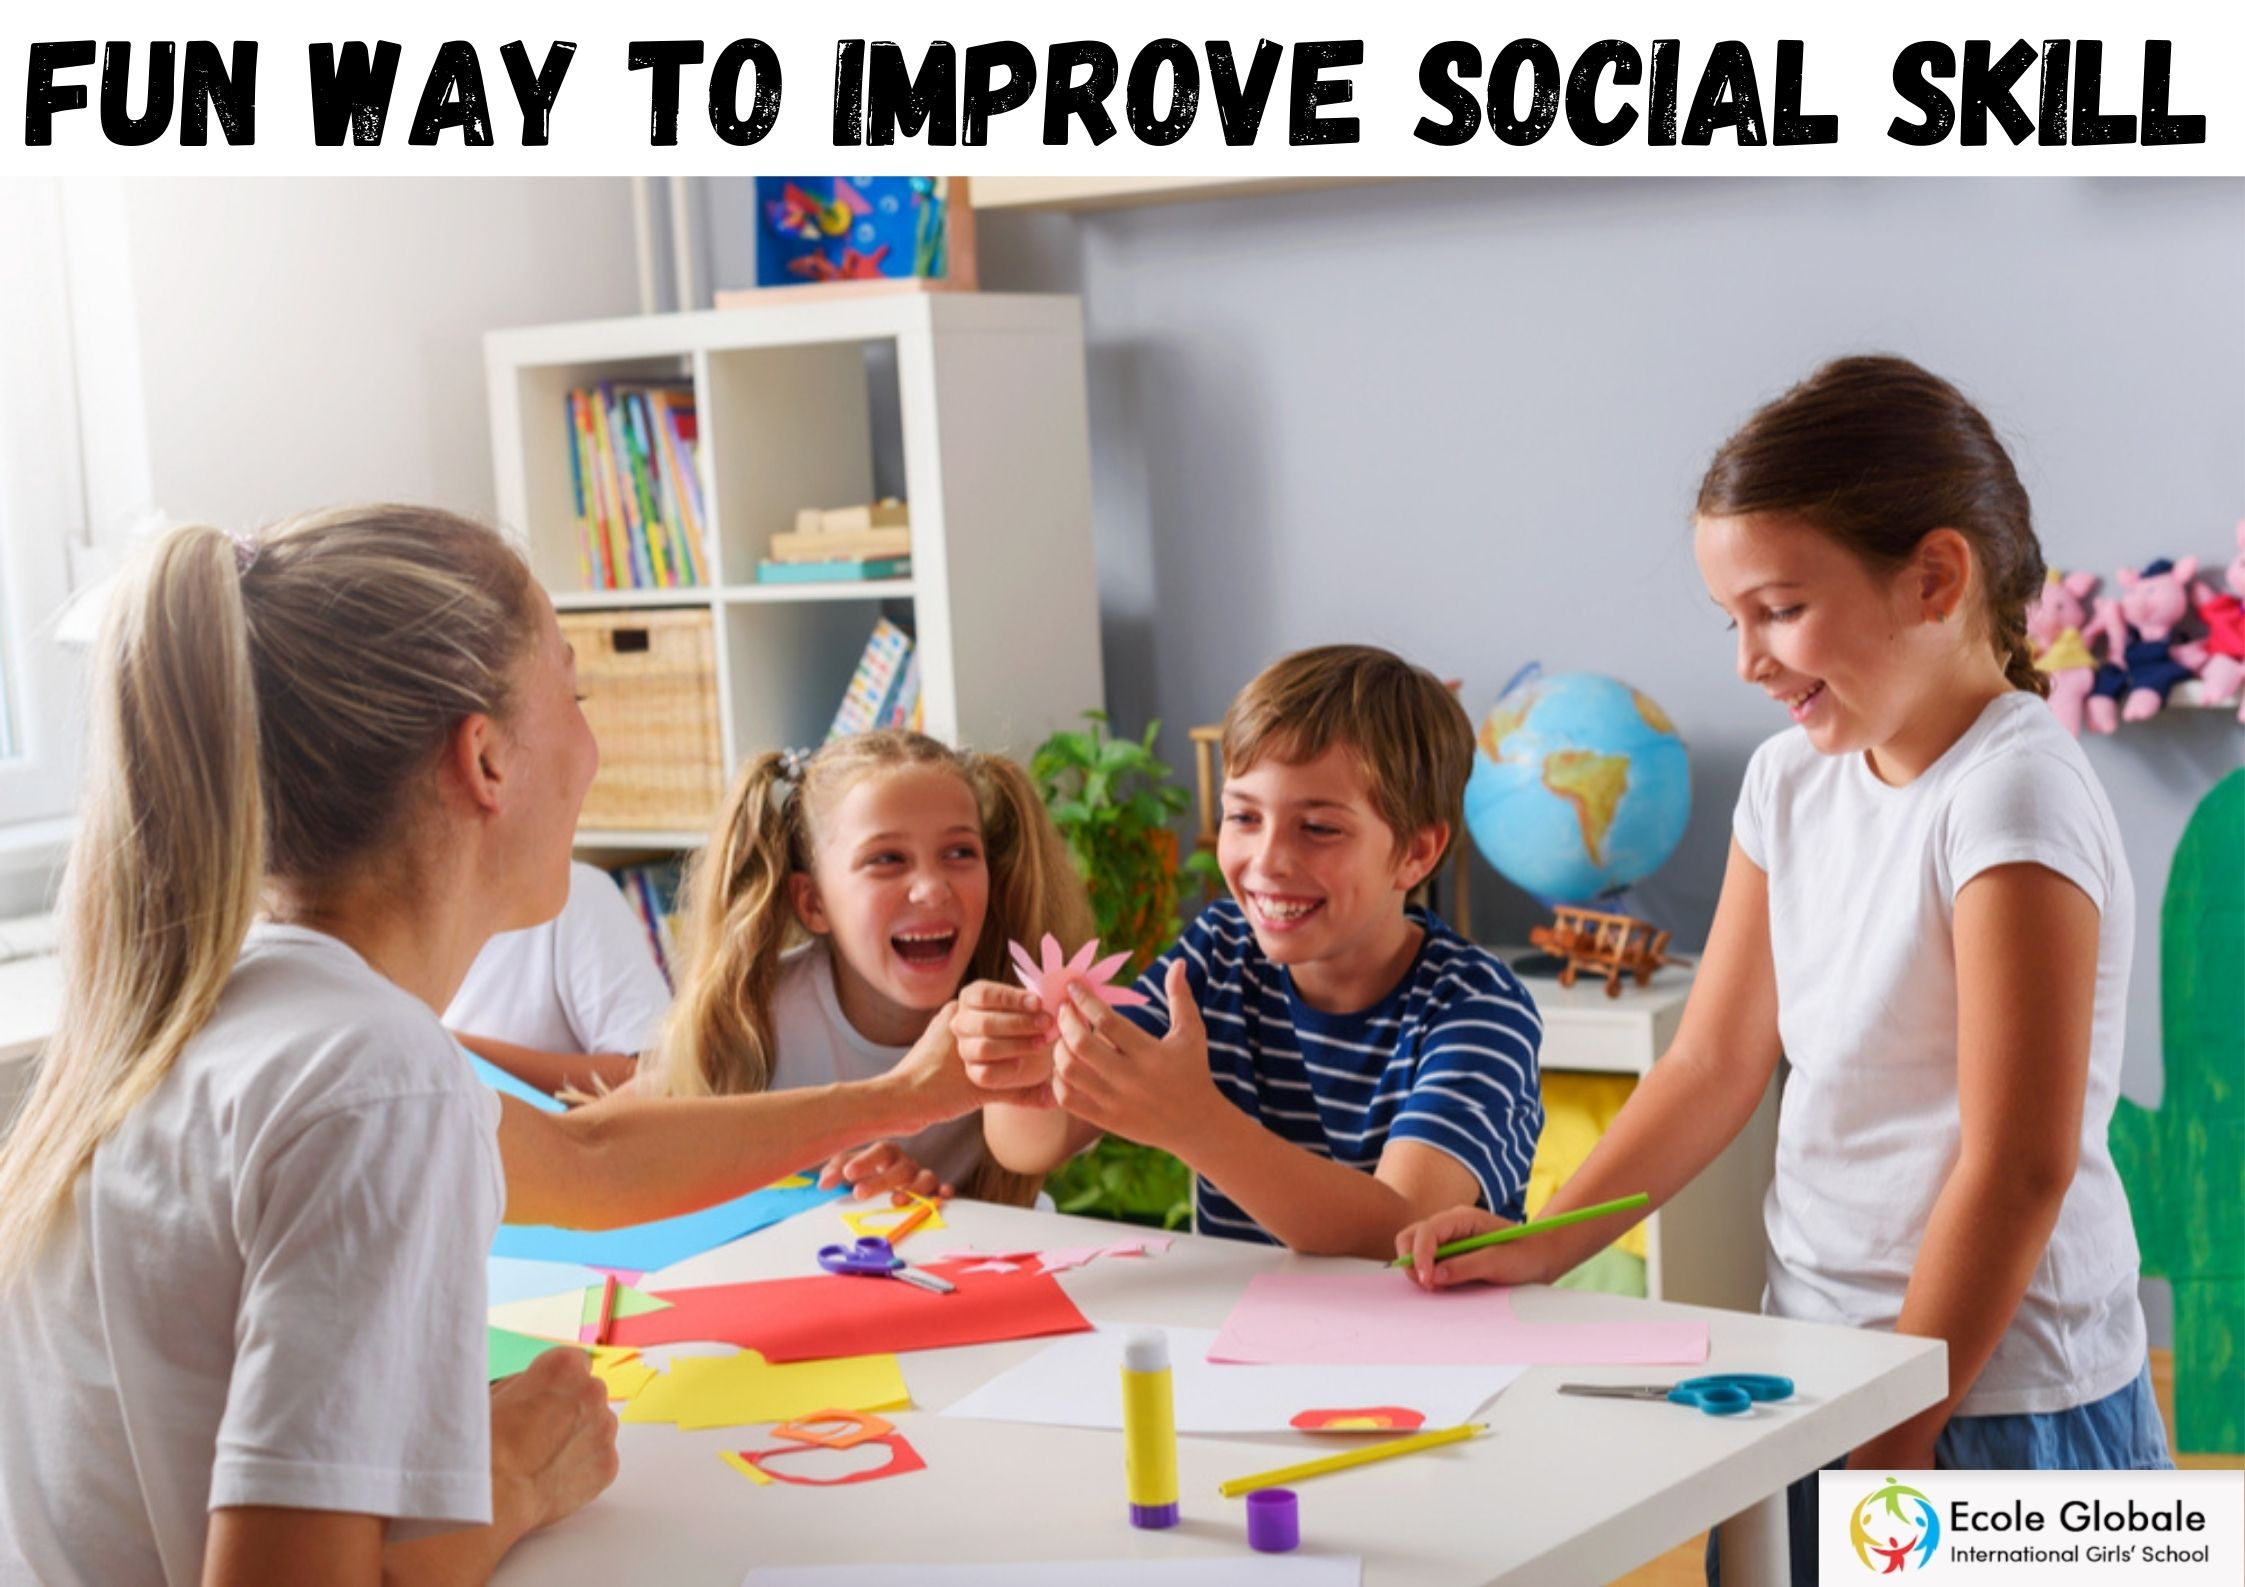 FUN ACTIVITIES FOR IMPROVING THE SOCIAL SKILLS OF STUDENTS